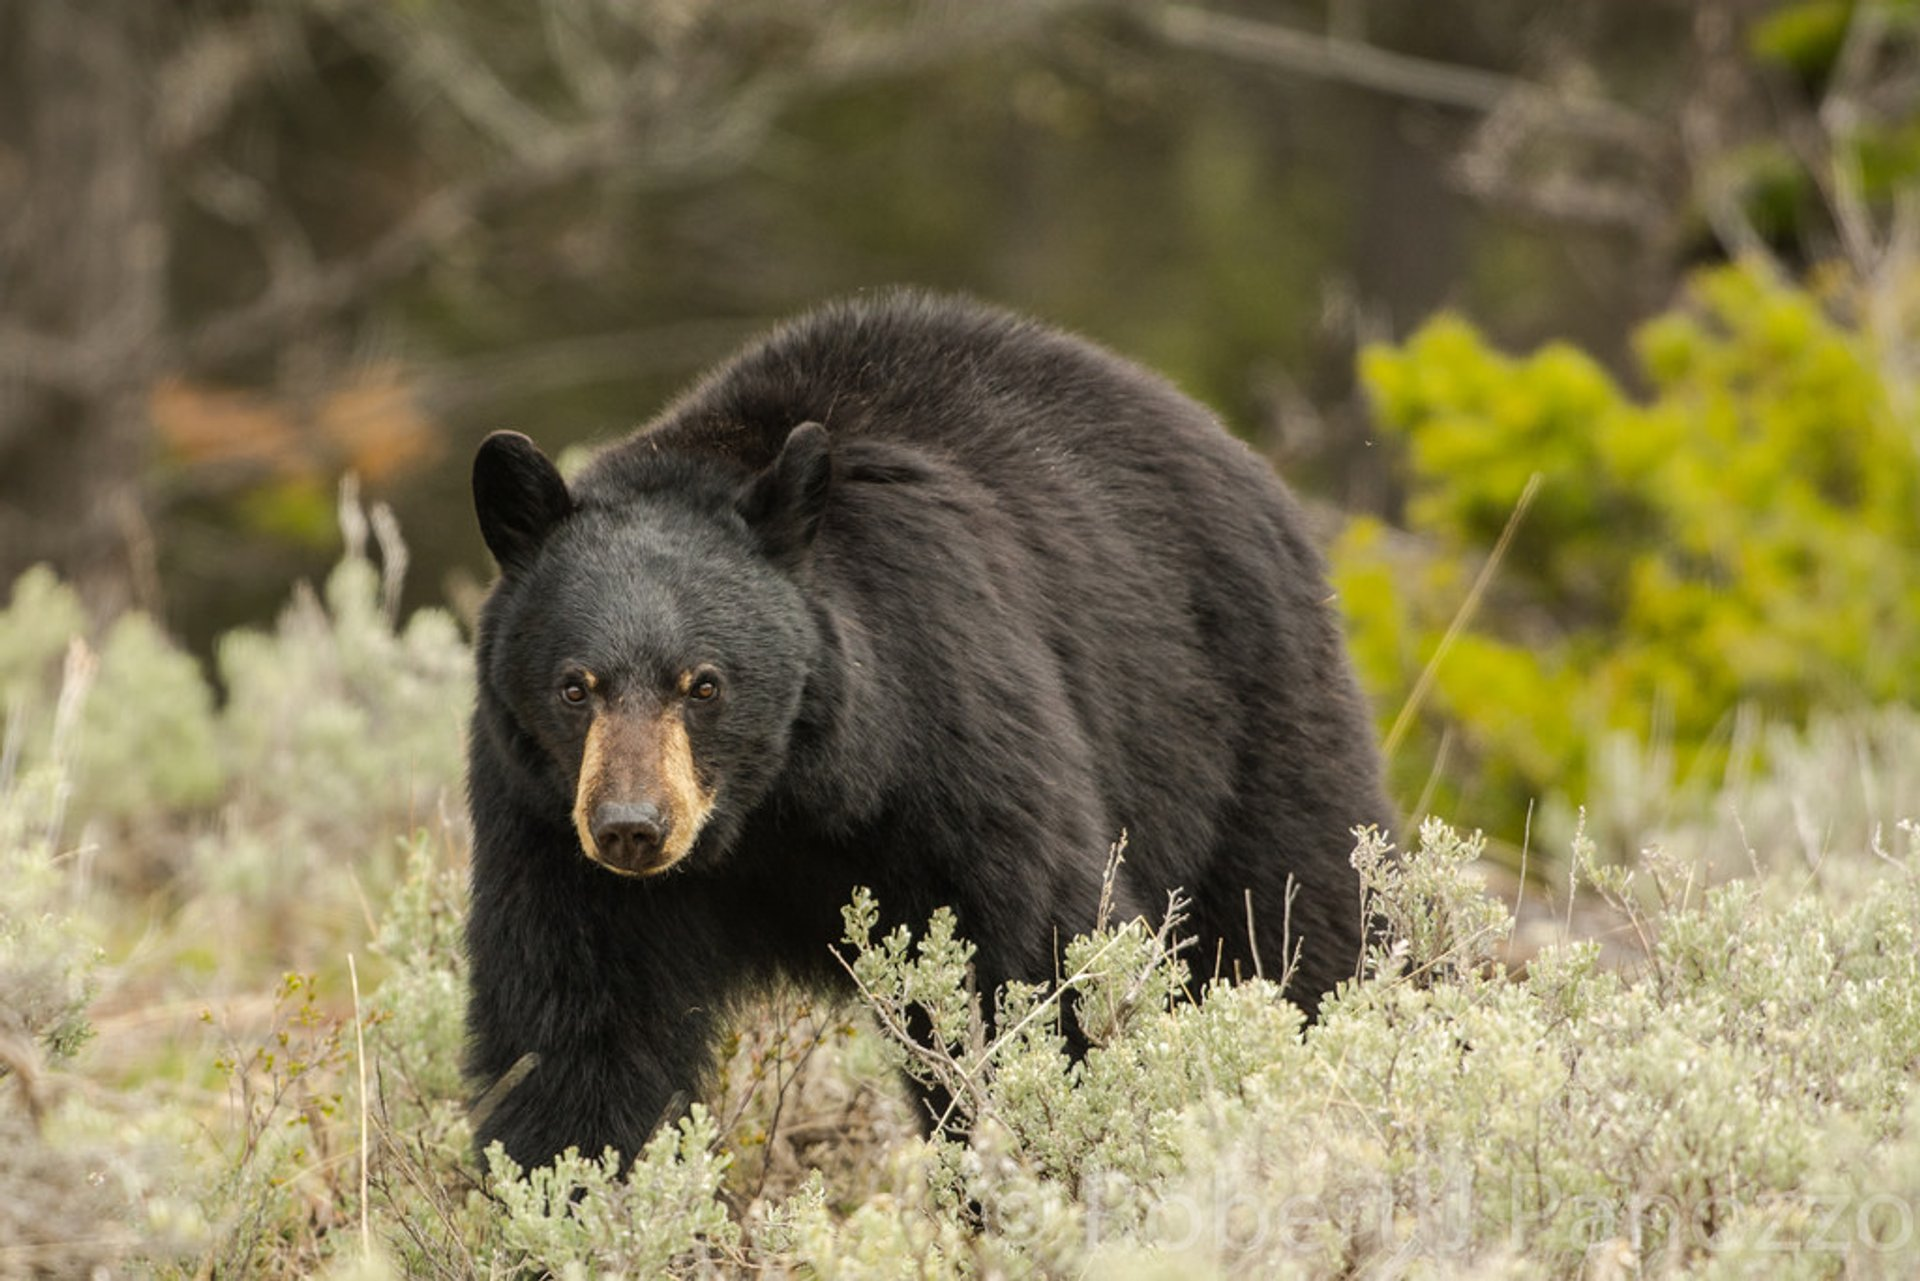 Black Bears in Yellowstone National Park 2020 - Best Time